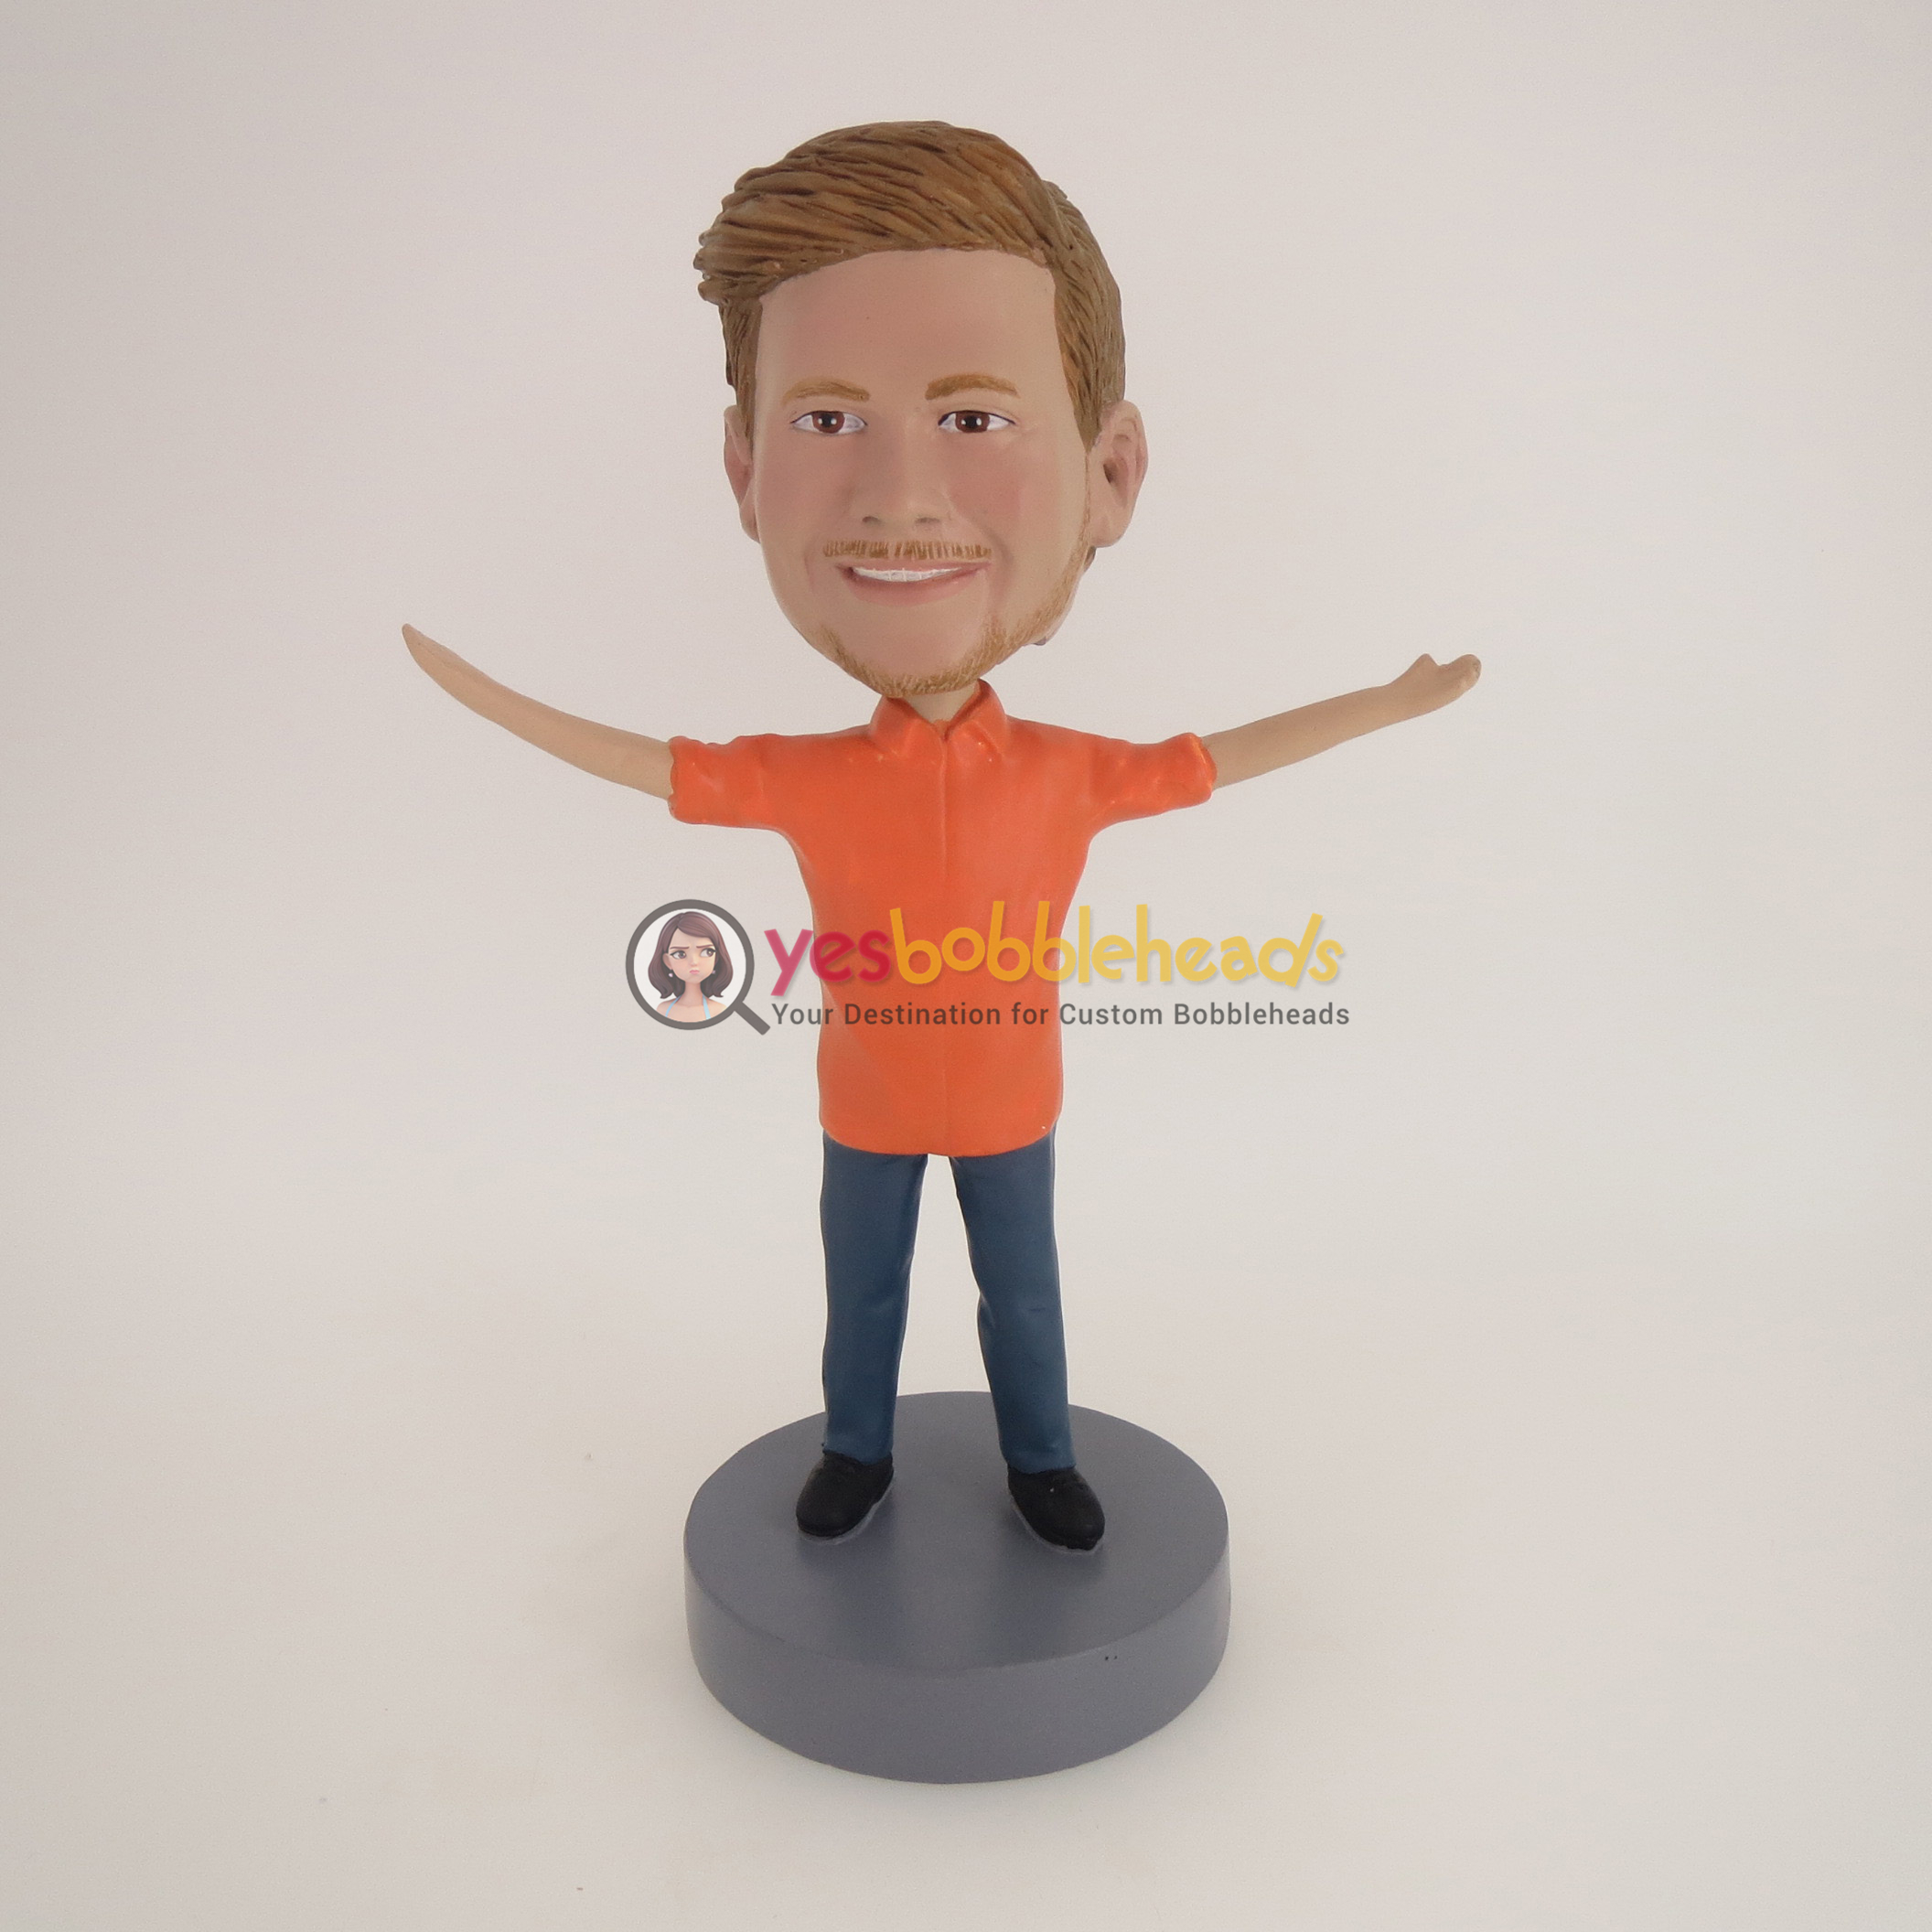 Picture of Custom Bobblehead Doll: Casual Man Welcoming